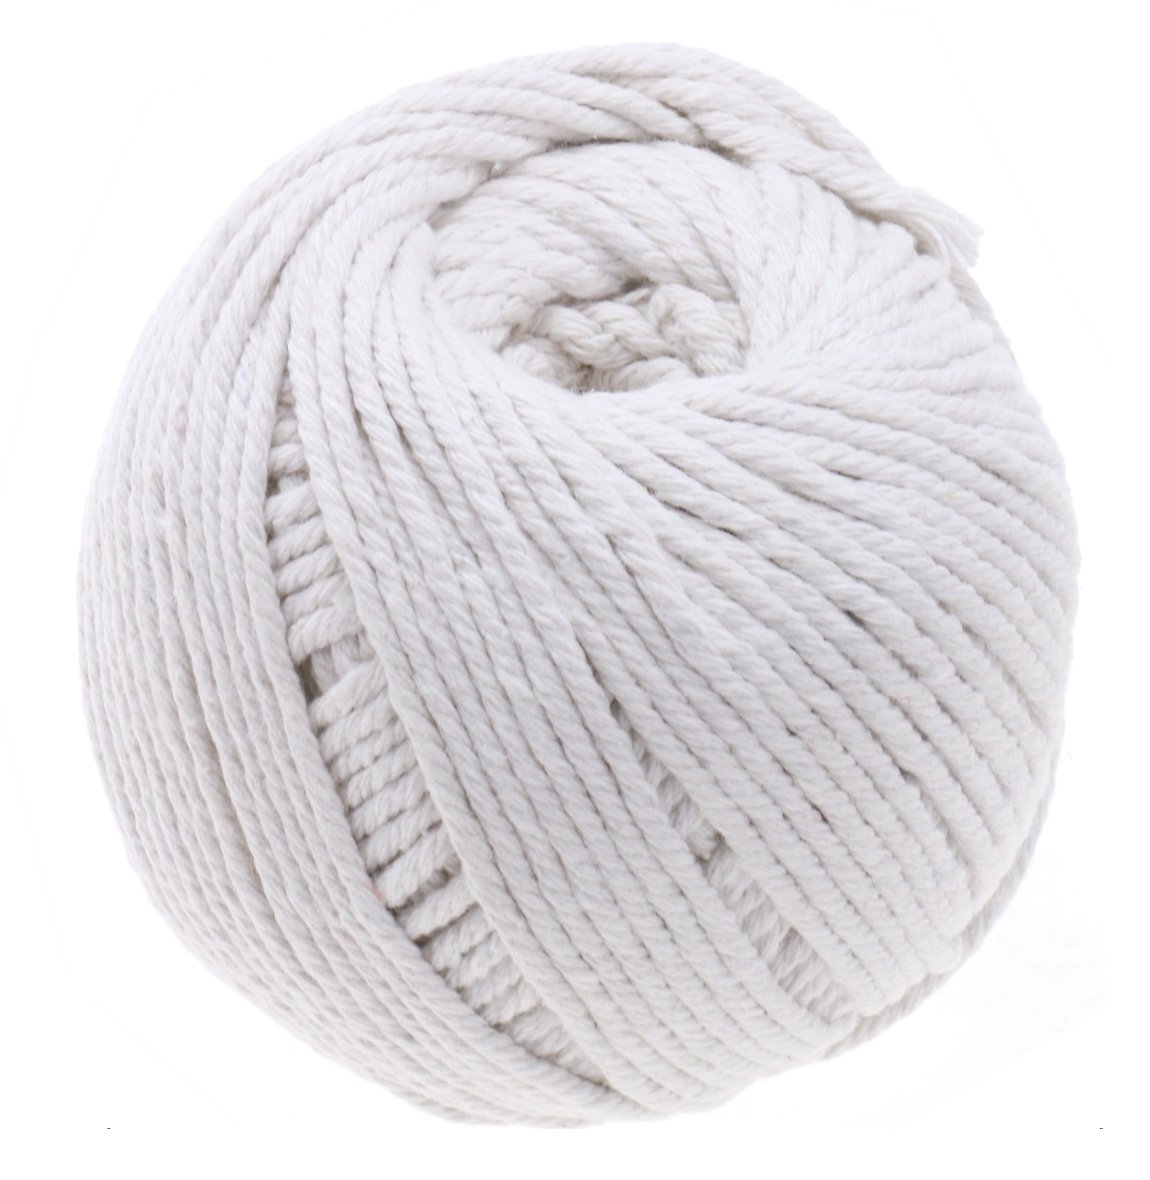 3mm Cotton Macrame Cord 328ft/100m White Macrame Rope Natural Cotton Cord Inxens